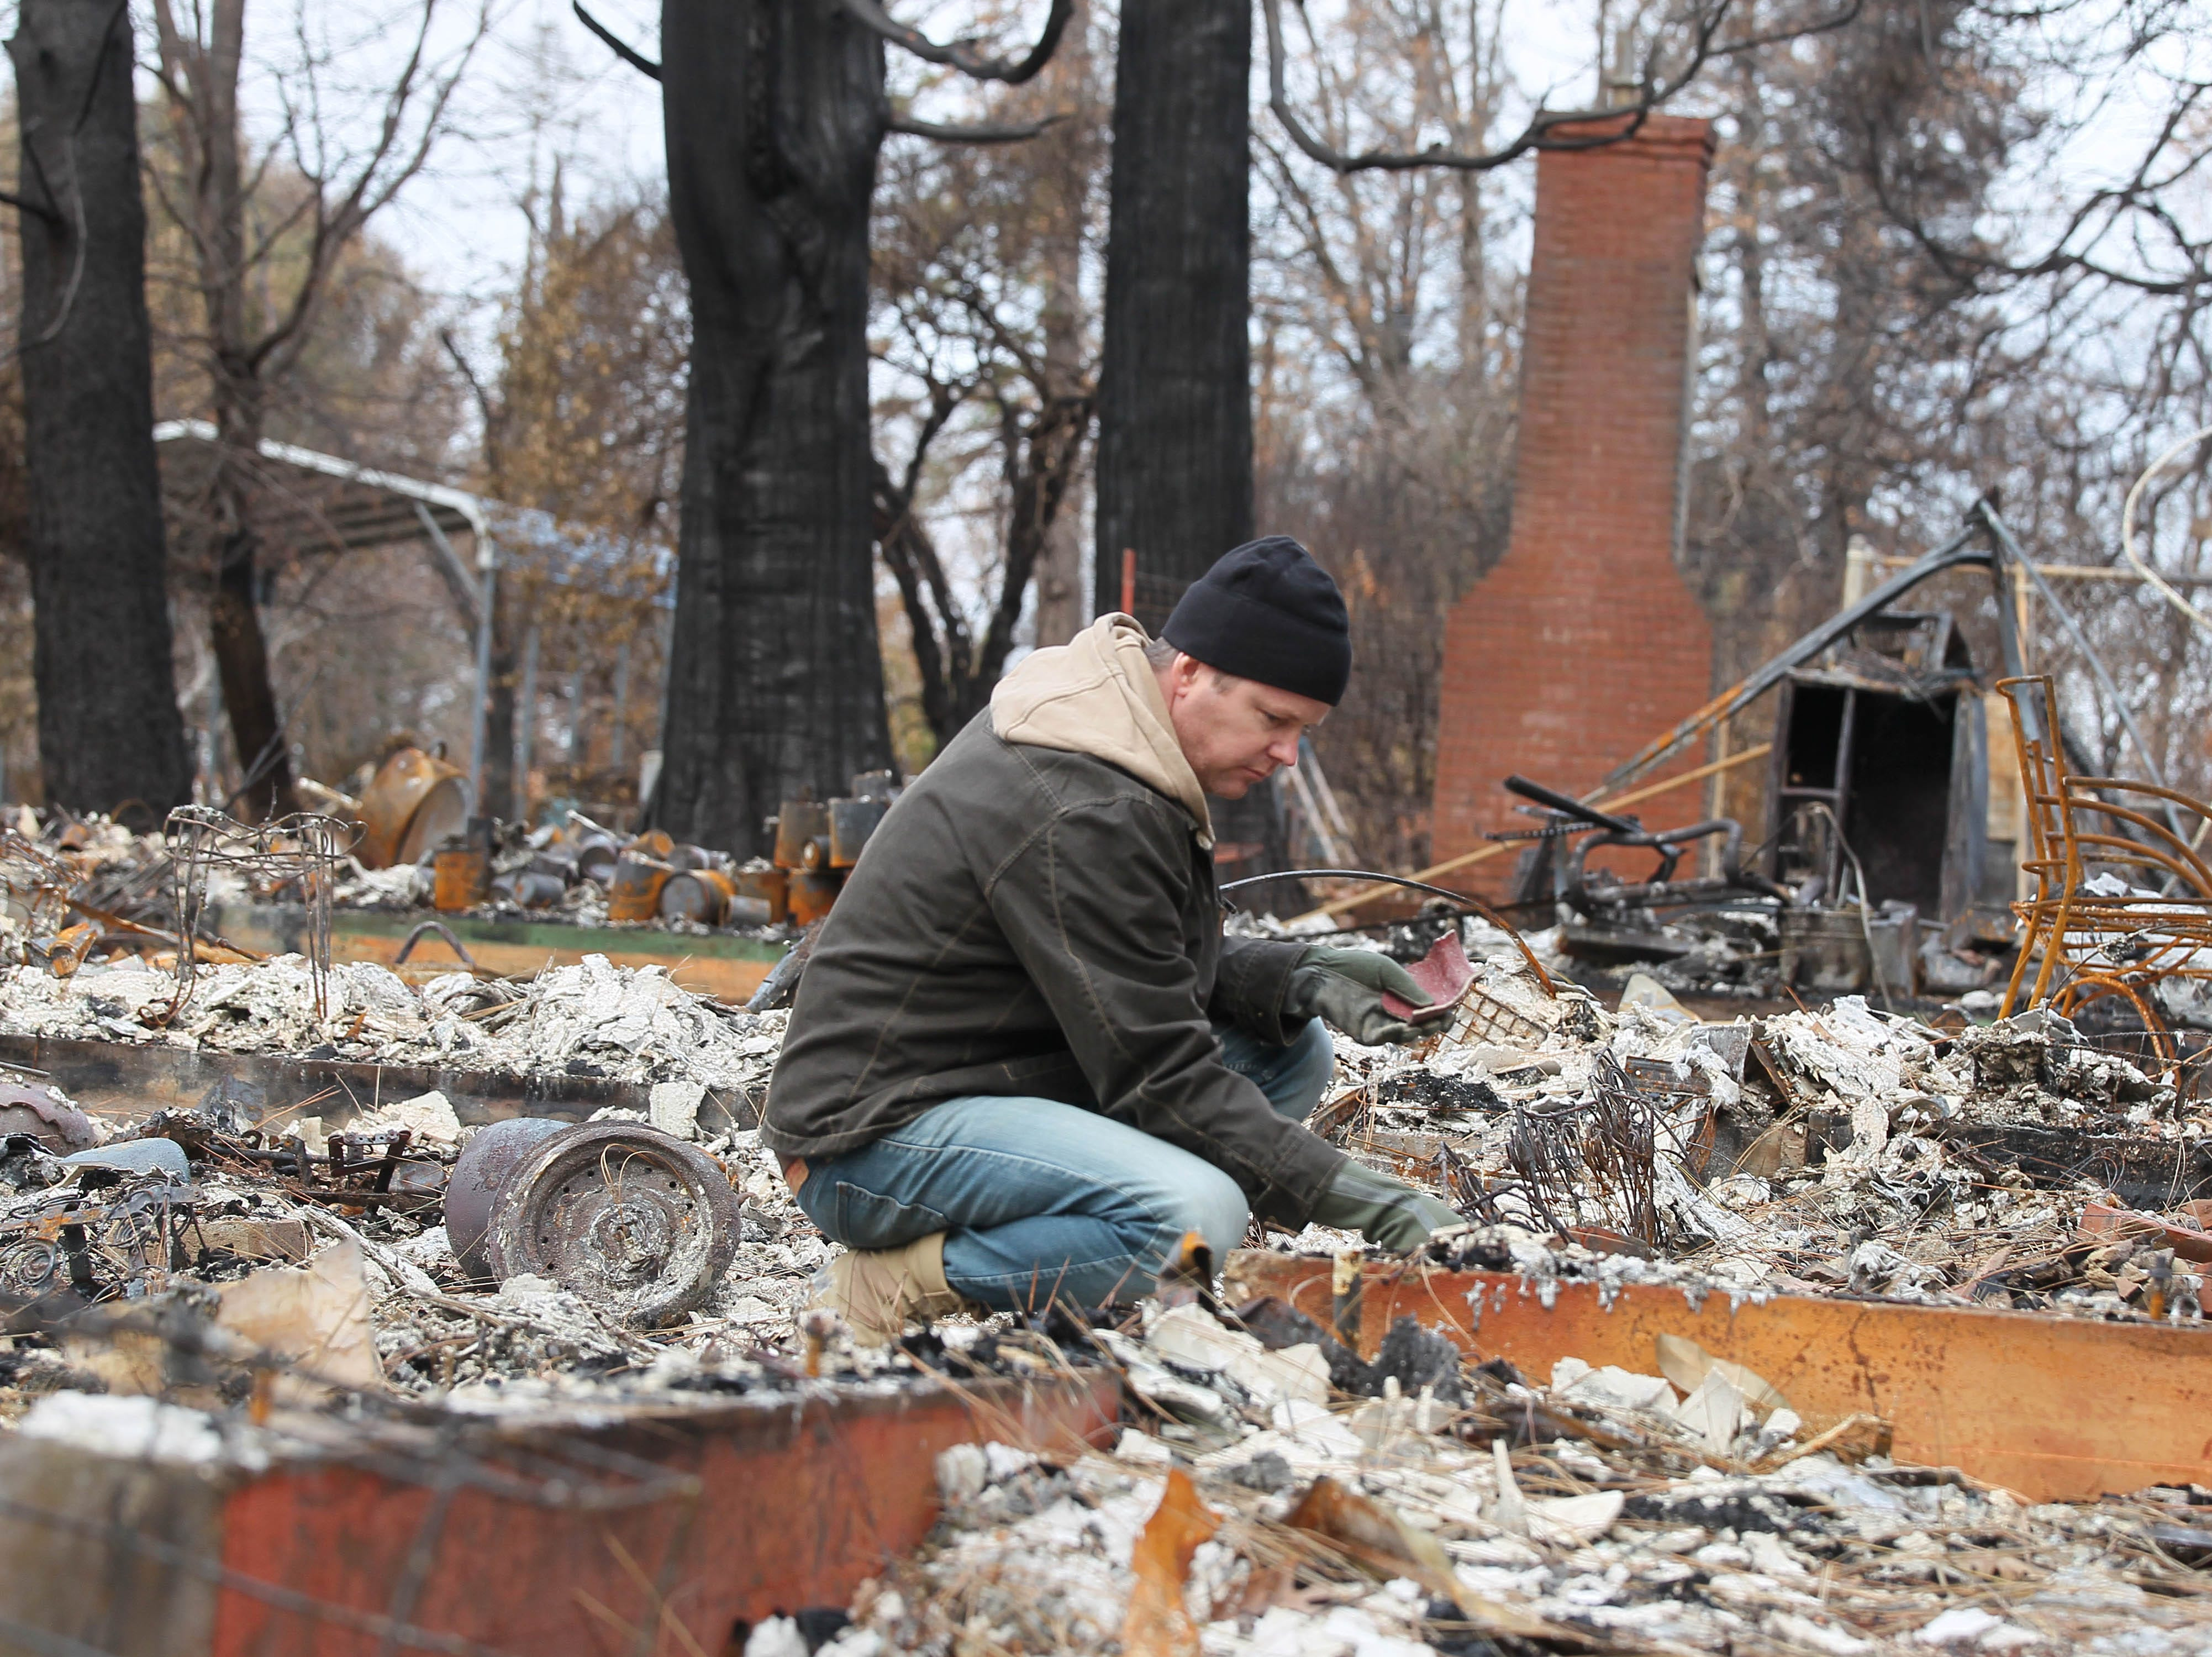 Zack Smith sifts through the debris of his parents' house along Oliver Road on Tuesday, the first day he and other Paradise residents were allowed to return since they were evacuated during the Camp Fire on Nov. 8, 2018.